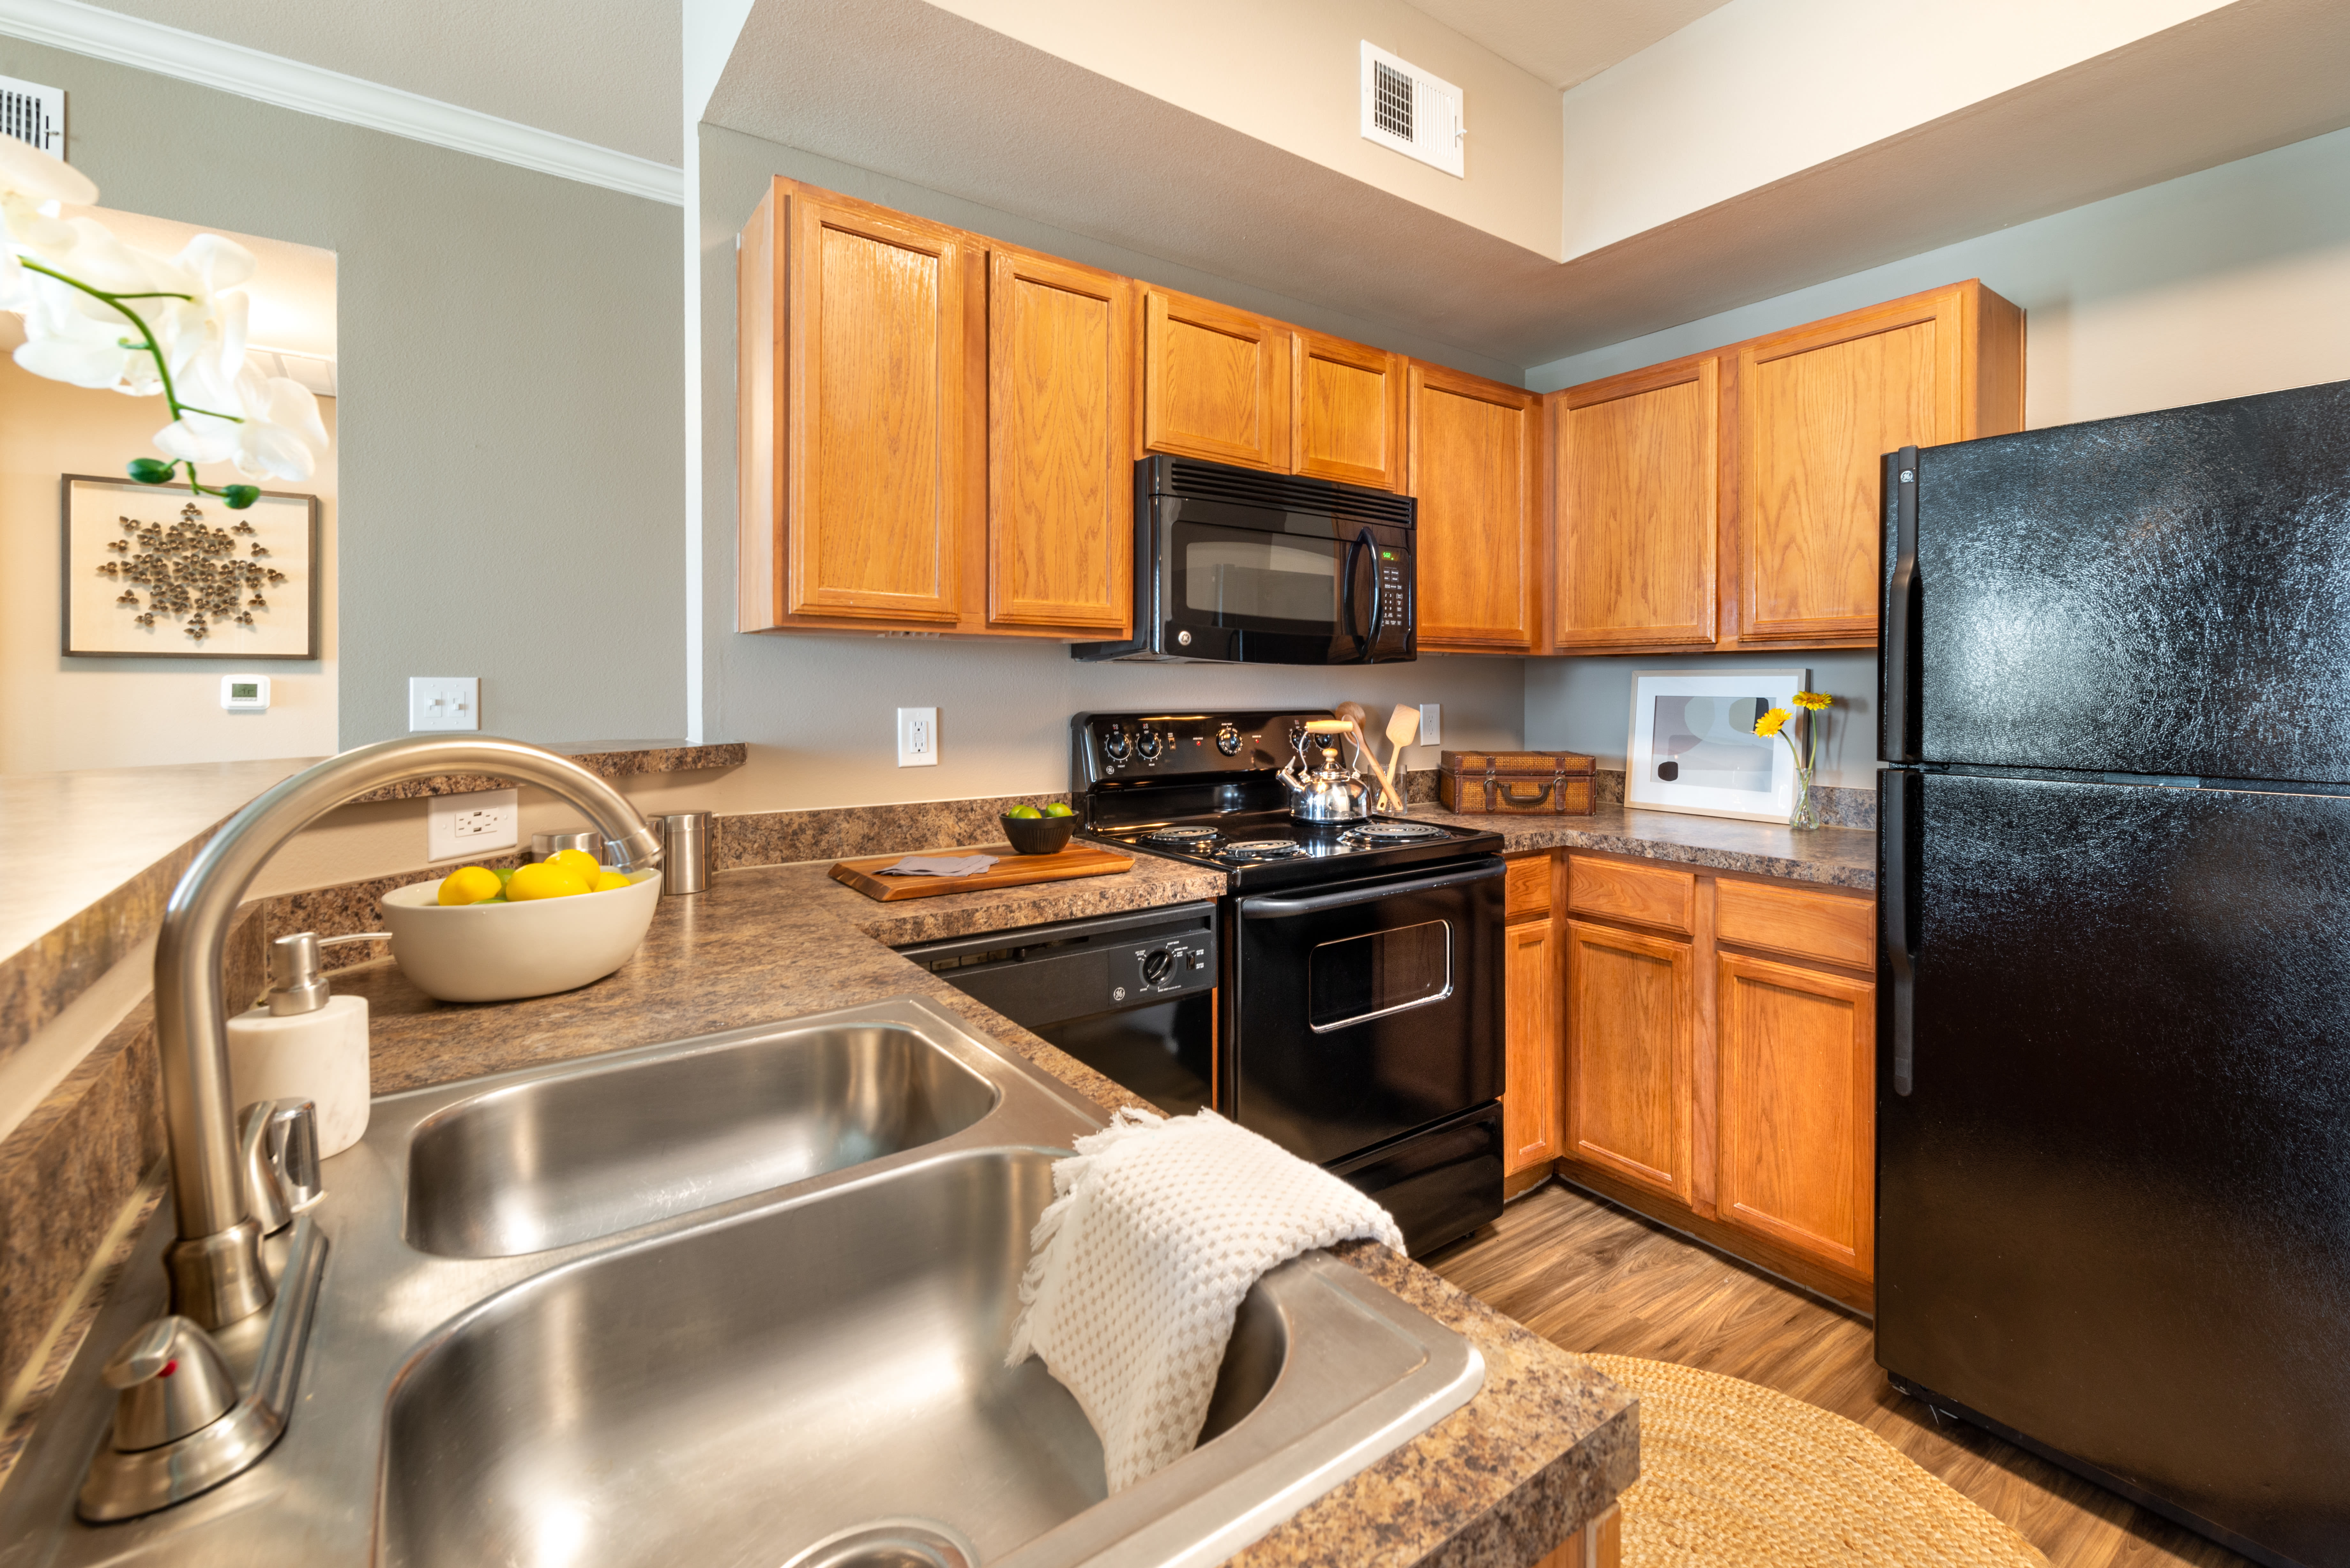 Black appliances in a model home's kitchen at Olympus Team Ranch in Benbrook, Texas